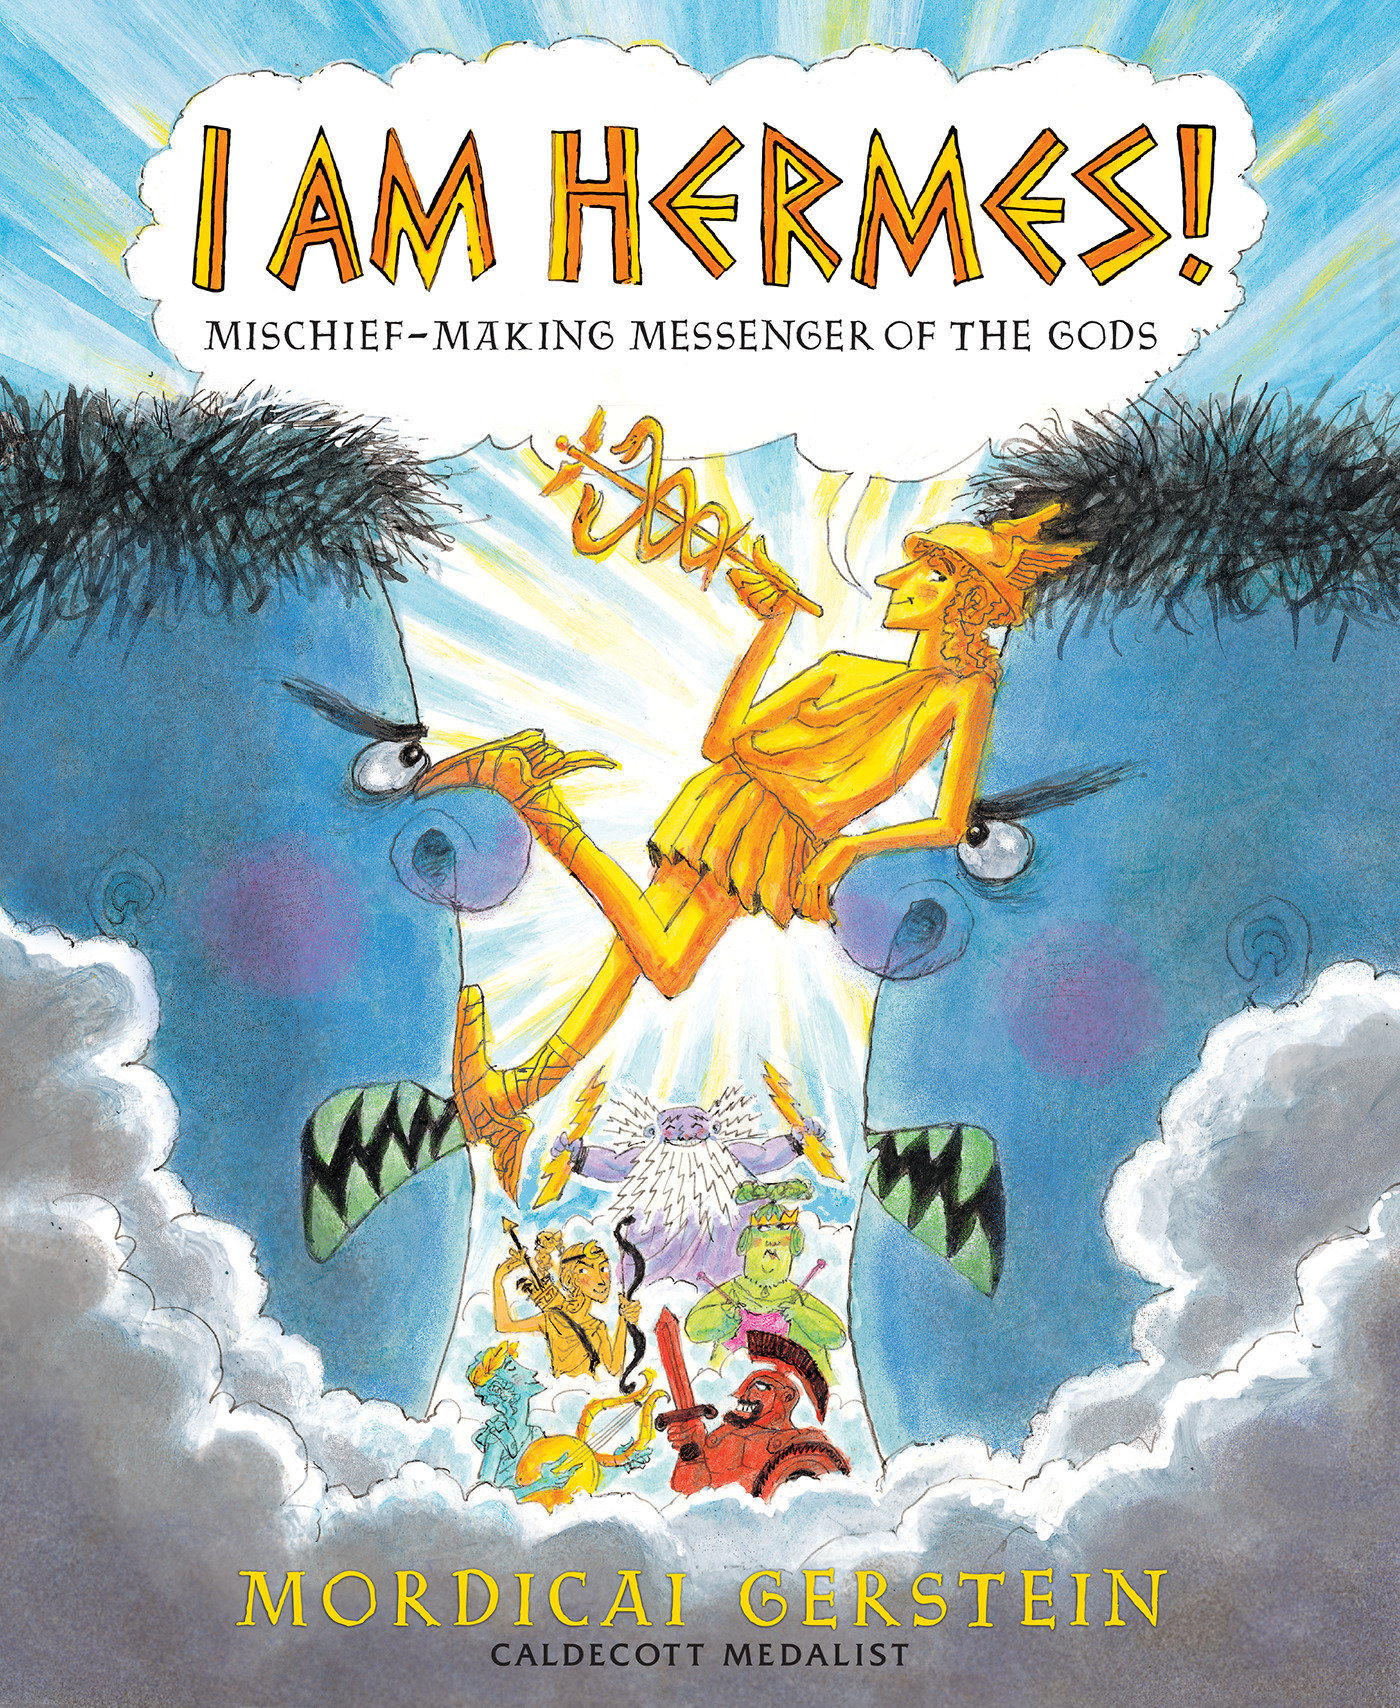 I am Hermes! mischief-making messenger of the gods cover image